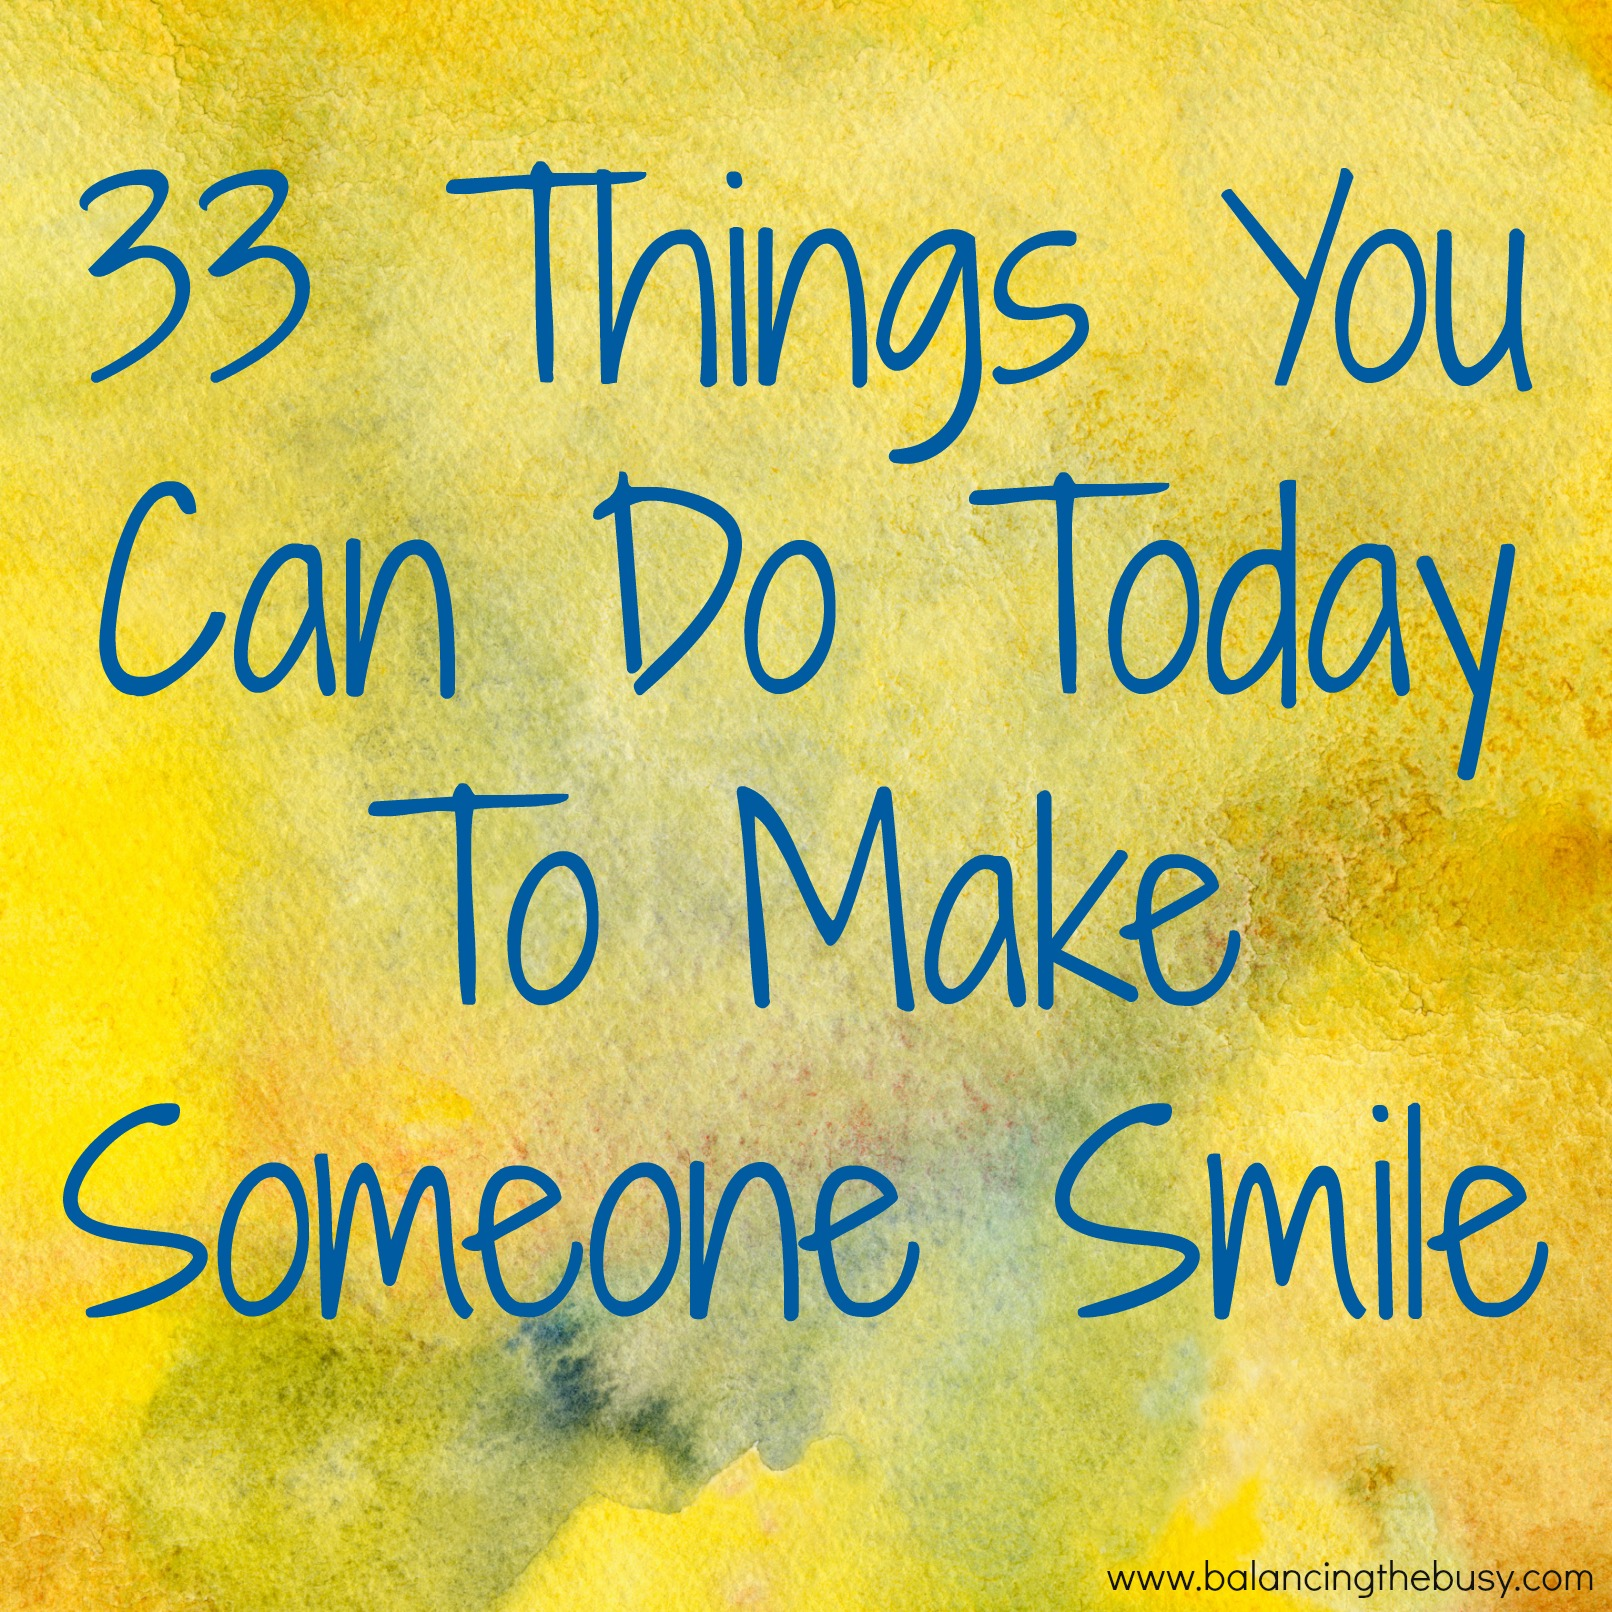 Make Someone Smile Today Quotes. QuotesGram